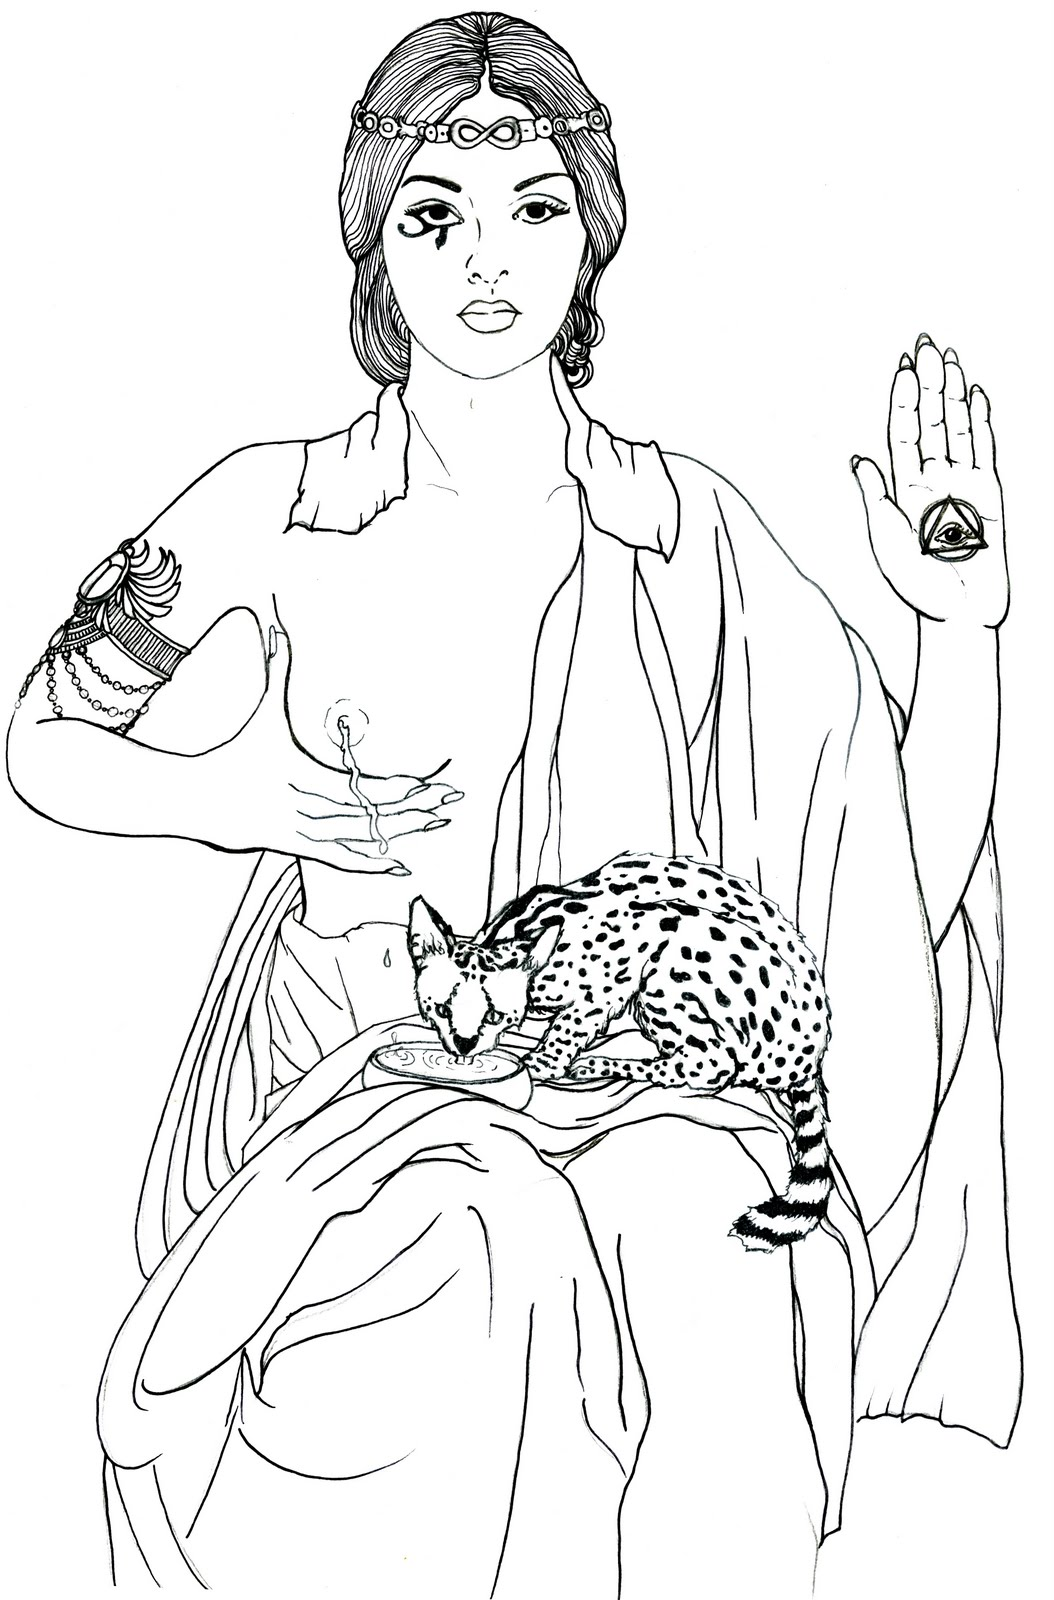 arts coloring pages - photo#11